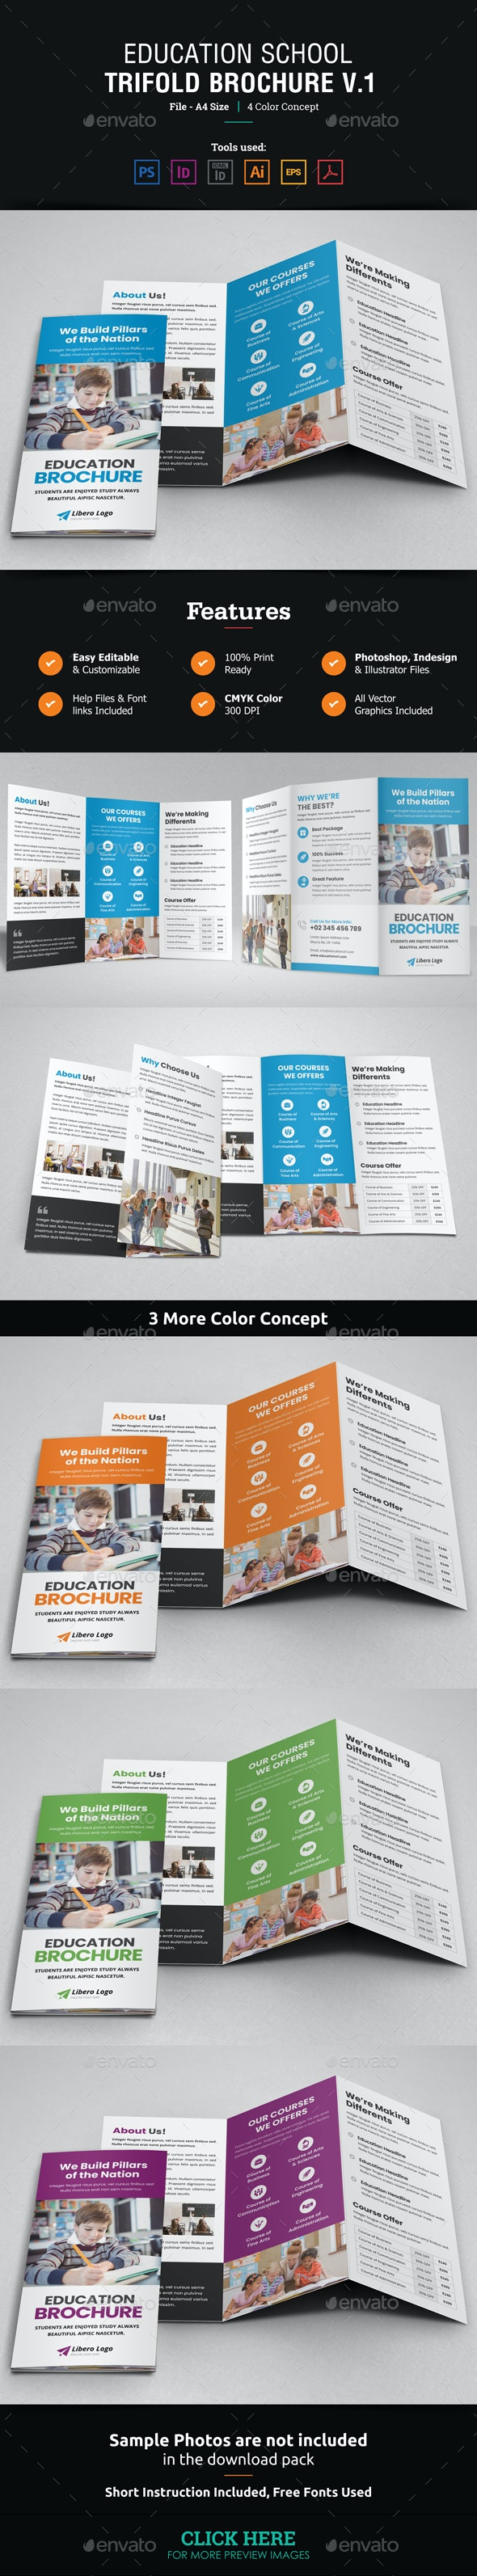 Education School Trifold Brochure v1 - Corporate Brochures